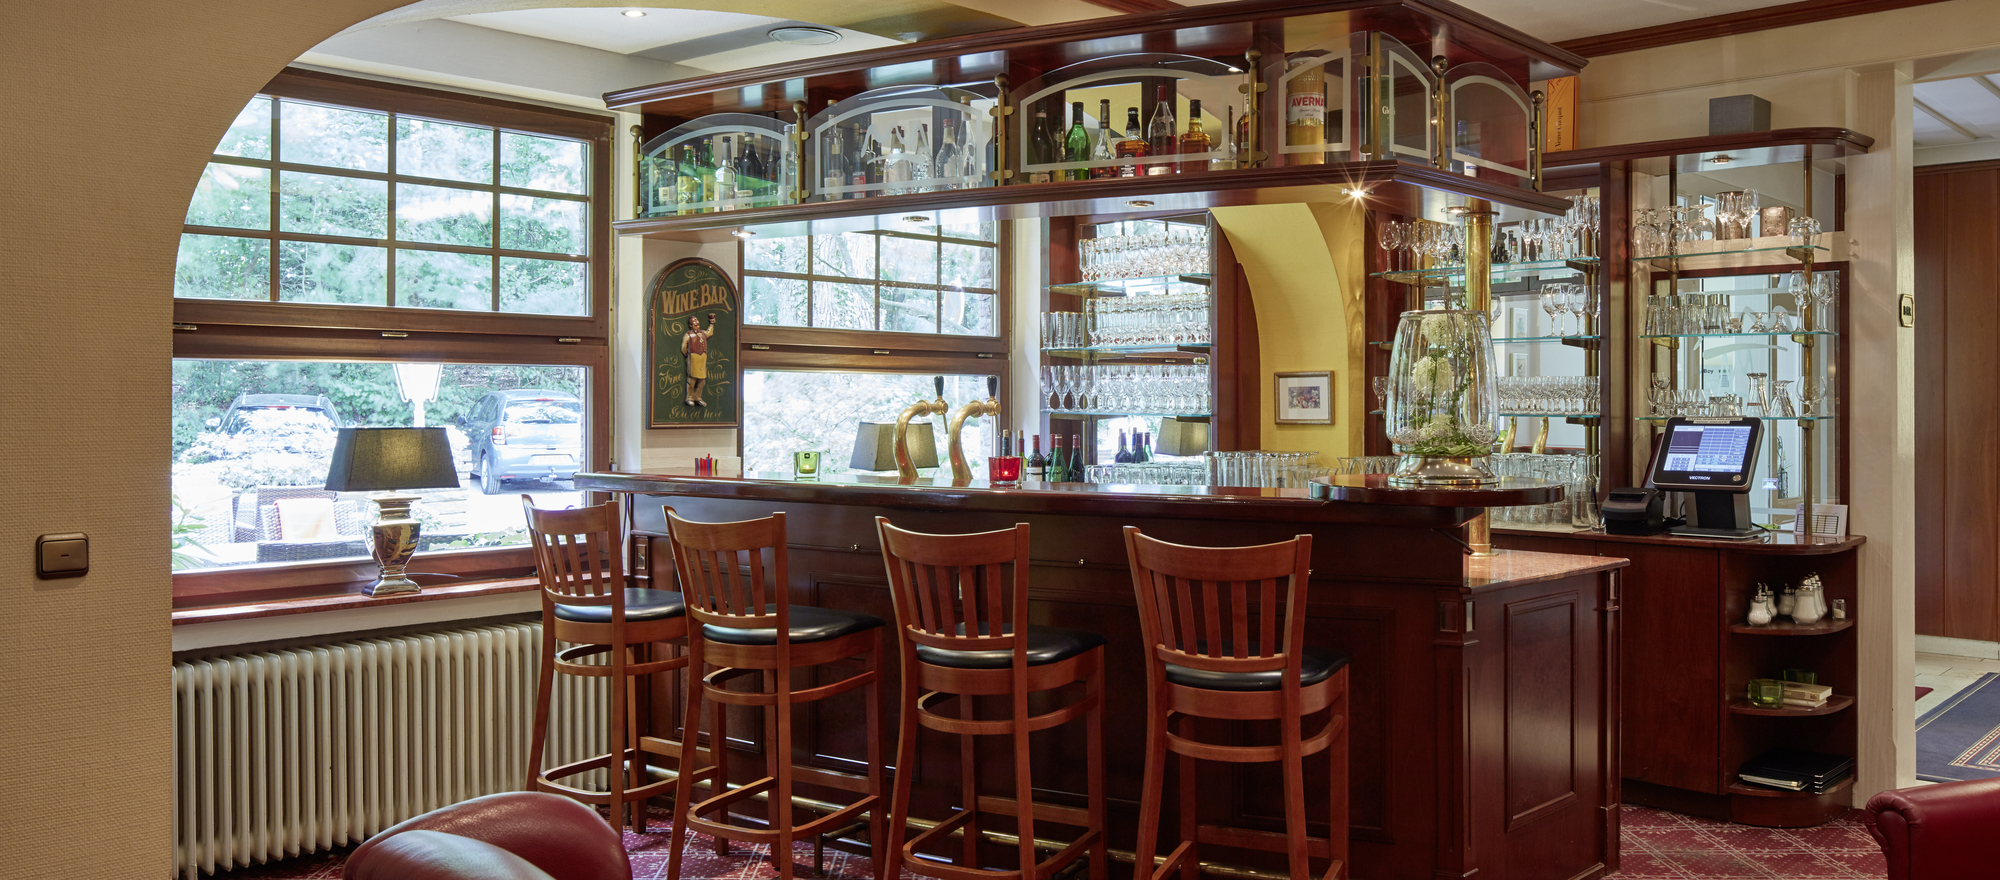 Hotel bar at the  Ringhotel Waldhotel Bärenstein in Horn-Bad Meinberg, 4-Sterne Hotel in the Teutoburg Forest